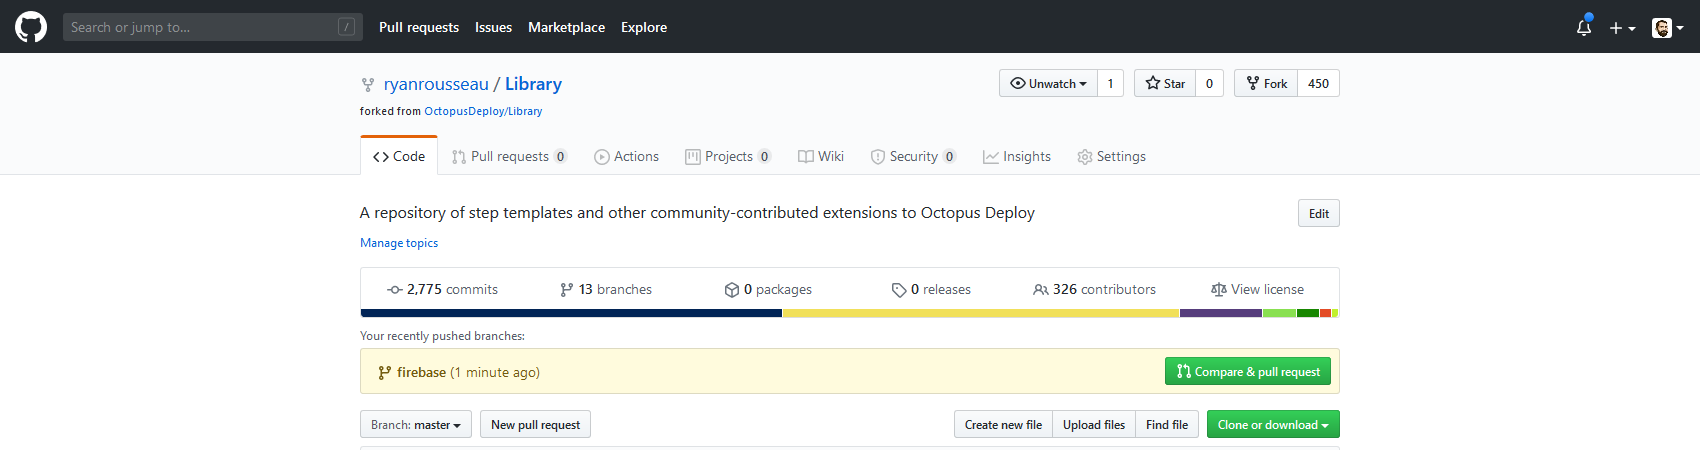 GitHub offers an option to compare and create a pull request